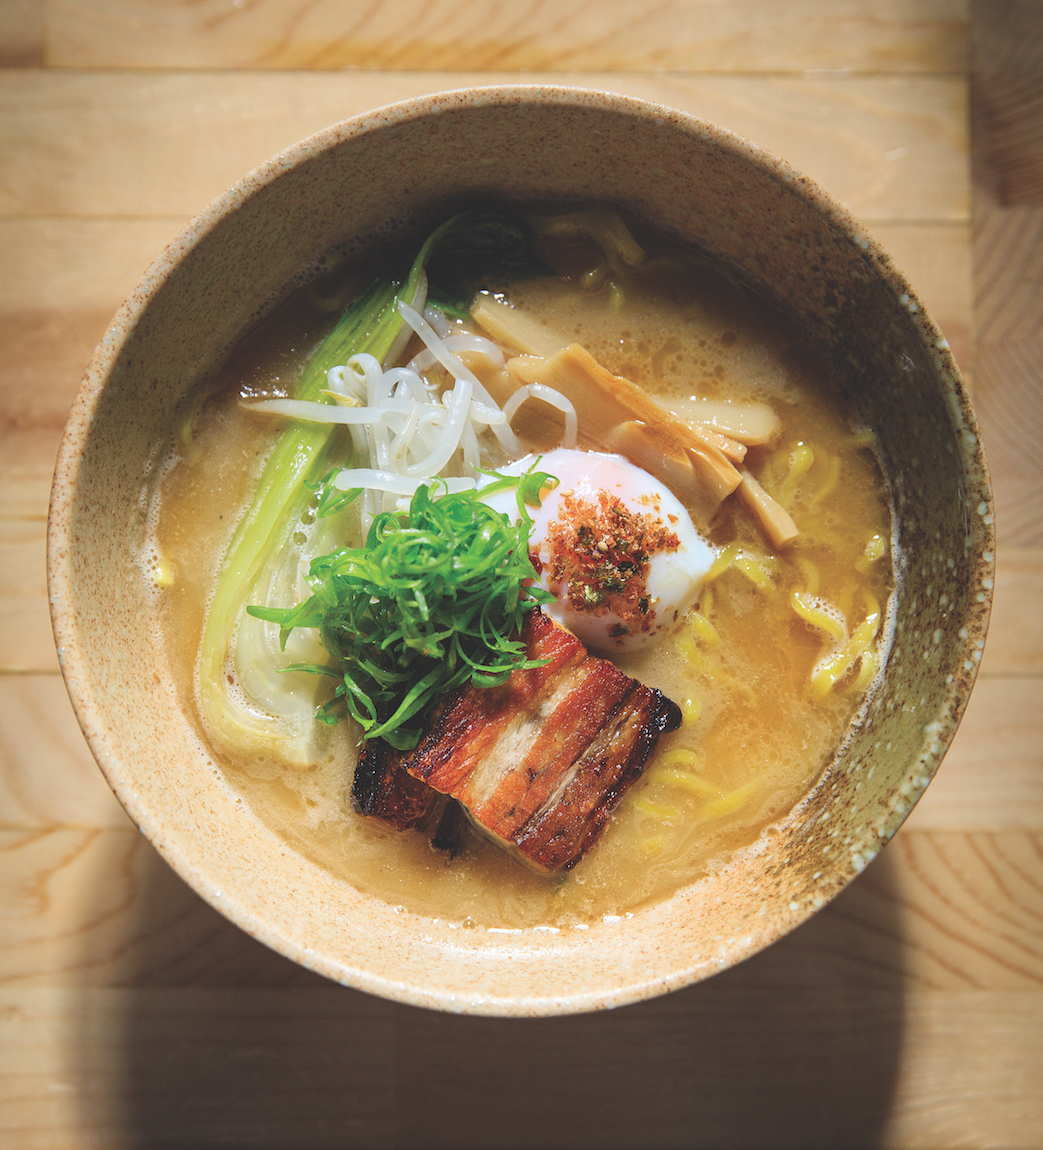 Kru's pork ramen topped with pork belly, bamboo shoots, slow-poached egg, green onions and bean sprouts; Billy Ngo's new ramen bar, Kodaiko, will also feature pork-based noodle bowls. (Photo by Max Whittaker)